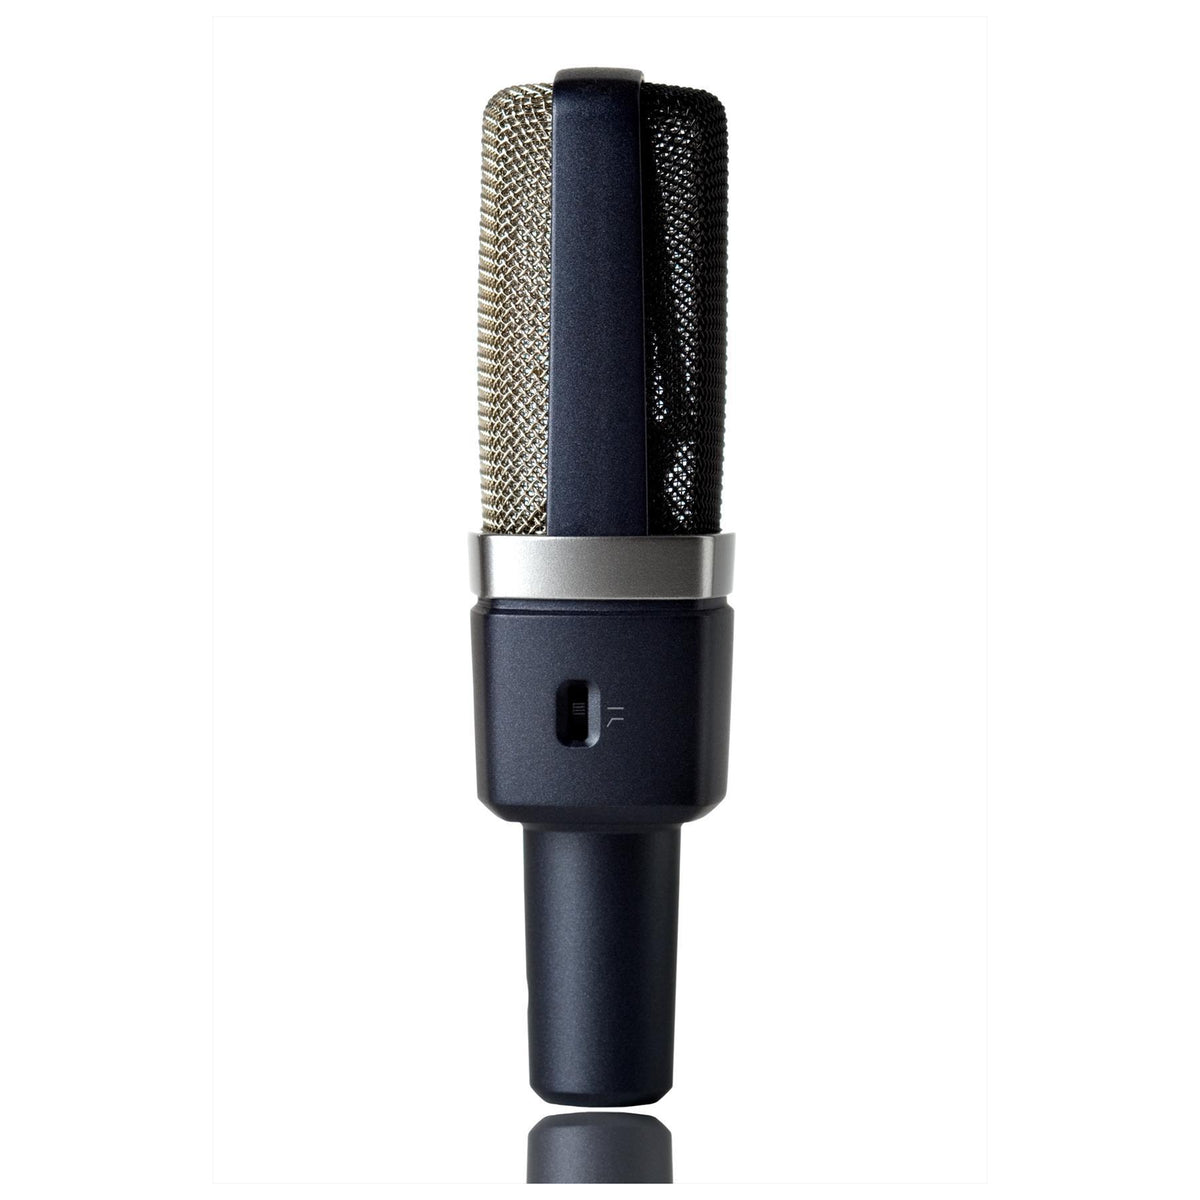 AKG C214 Microphone Bundle with 20-foot XLR Cable & Pop Filter